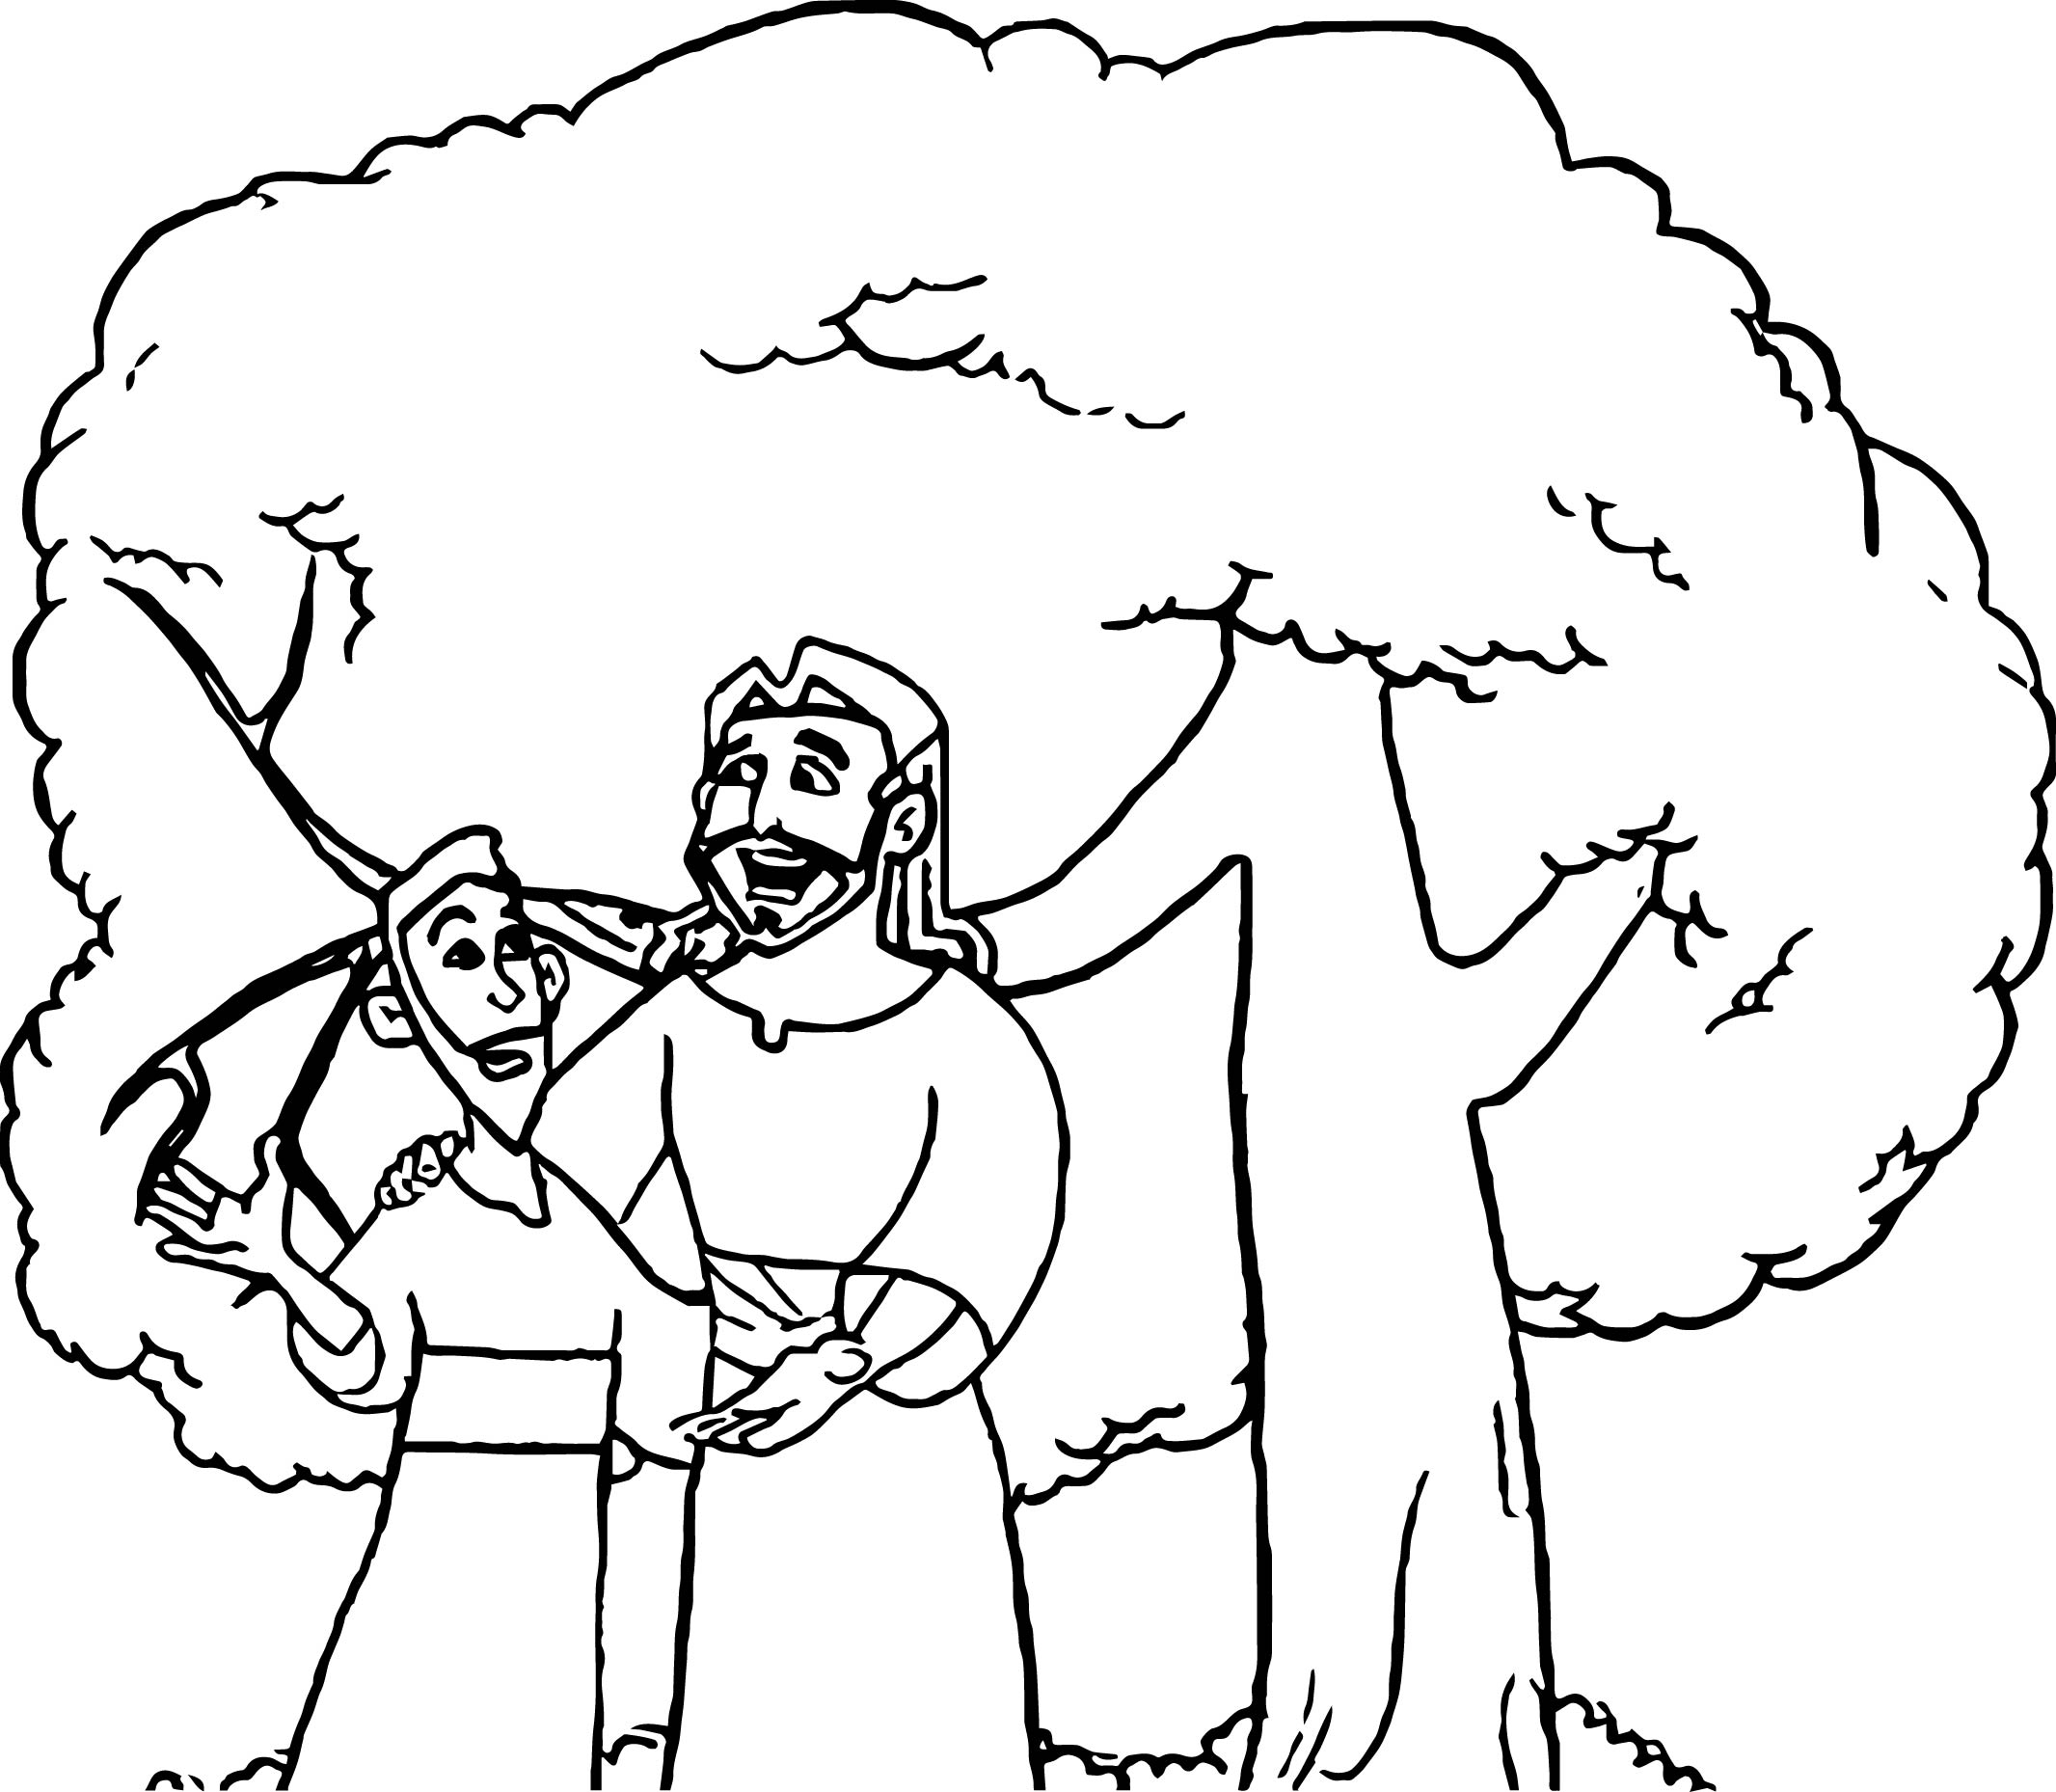 Coloring pages zacchaeus - Zacchaeus Talking Jesus Coloring Page